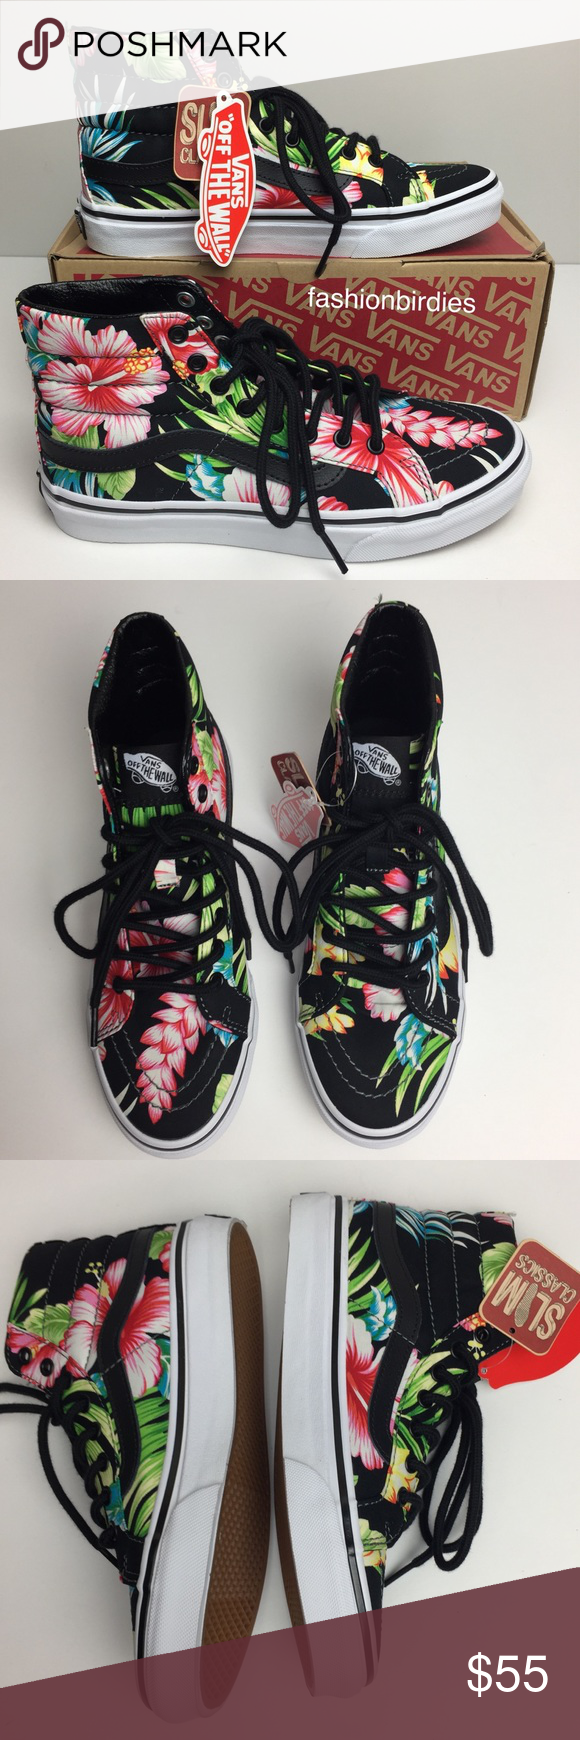 a33ef02c0f Vans SK8-Hi Slim Hawaiian Floral Black High Tops Beautiful tropical  Hawaiian floral high top skate shoes. Will sure to add a great pop of color  and ...